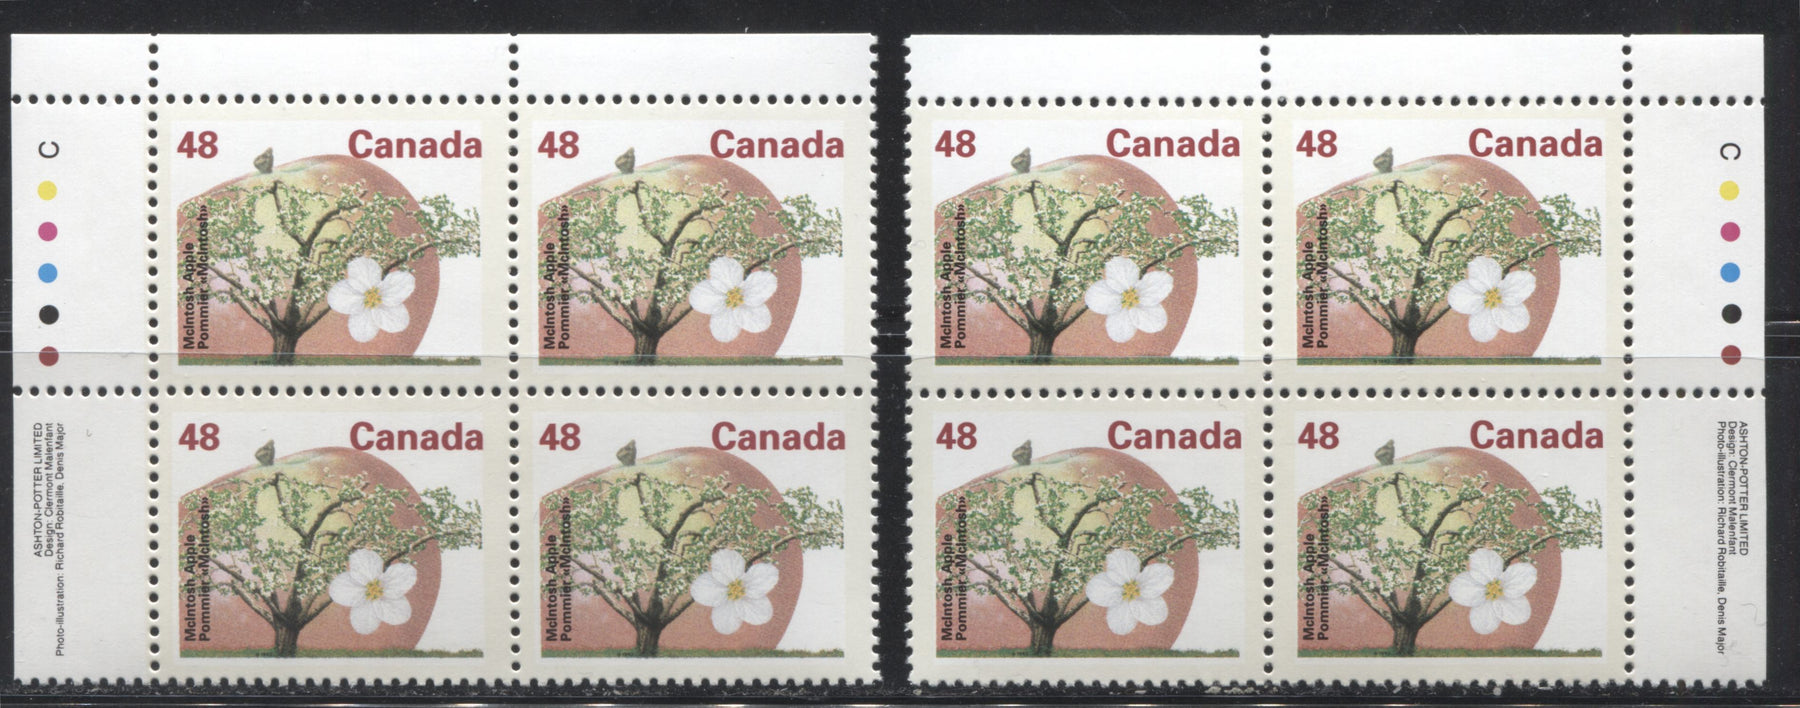 Canada #1363 48c McIntosh Apple, 1991-1998 Fruit & Flag Definitive Issue, VFNH UL and UR Inscription Blocks, Perf. 13.1 on Dead/NF Coated Papers Paper